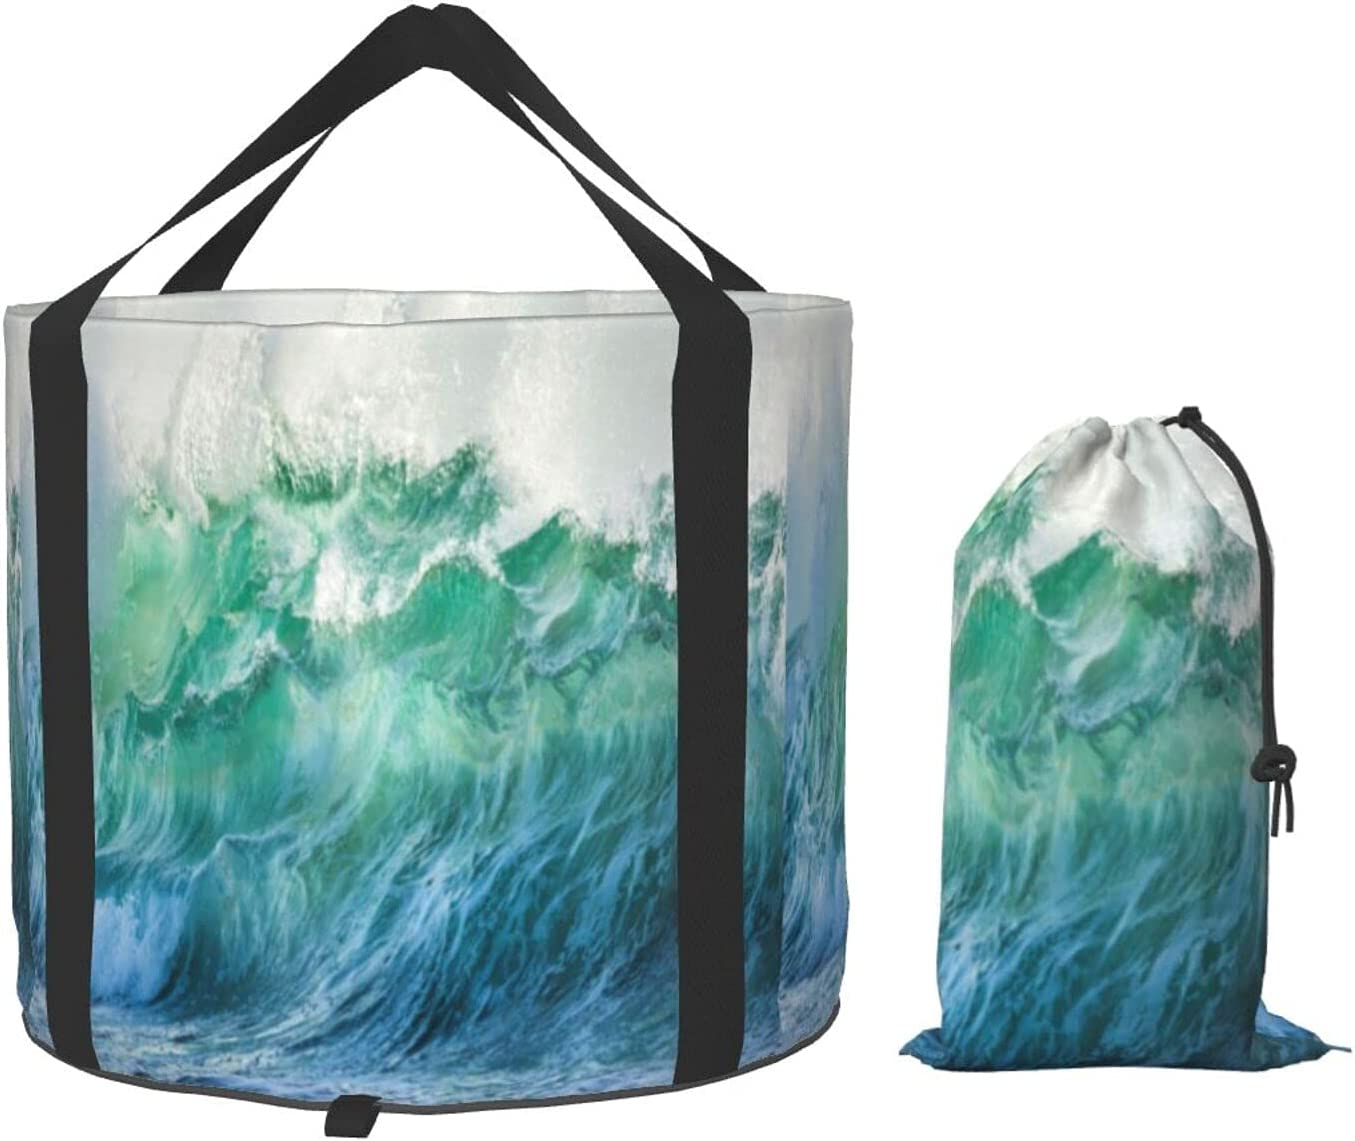 Multifunctional Portable Collapsible Bucket Surf L Shipping Detroit Mall included Wave Breaking